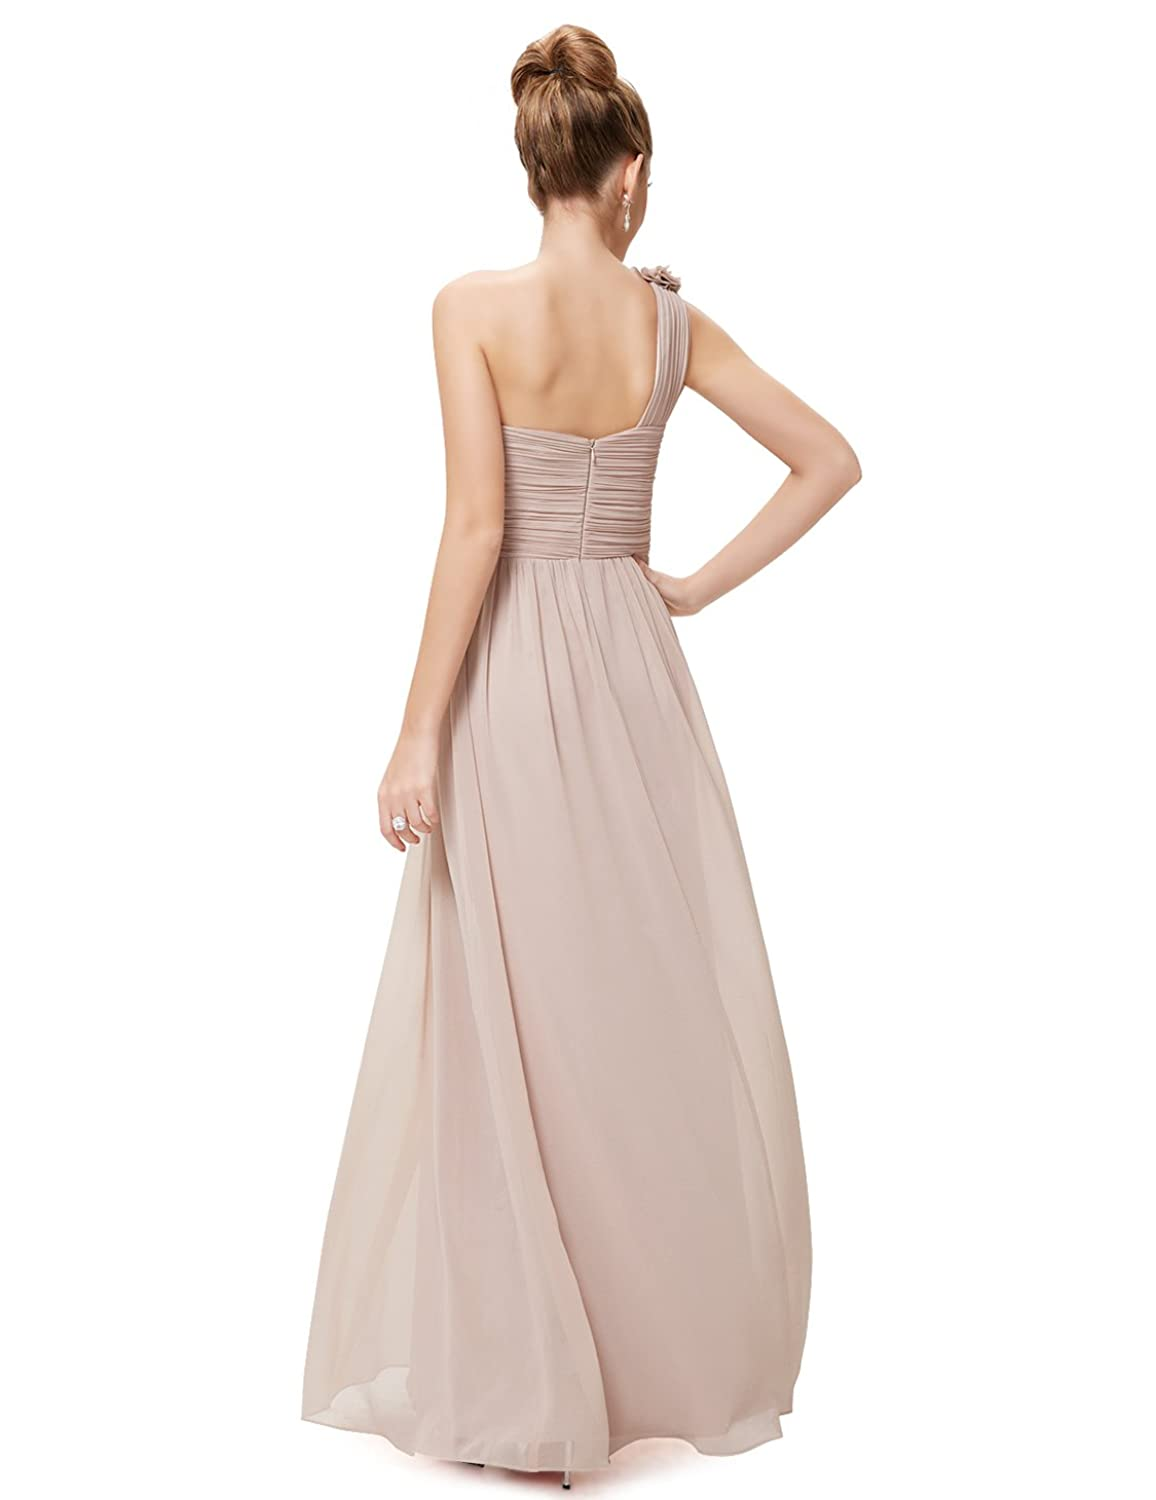 Ever pretty flower one shoulder long bridesmaids party dress 08237 ever pretty flower one shoulder long bridesmaids party dress 08237 at amazon womens clothing store ombrellifo Images